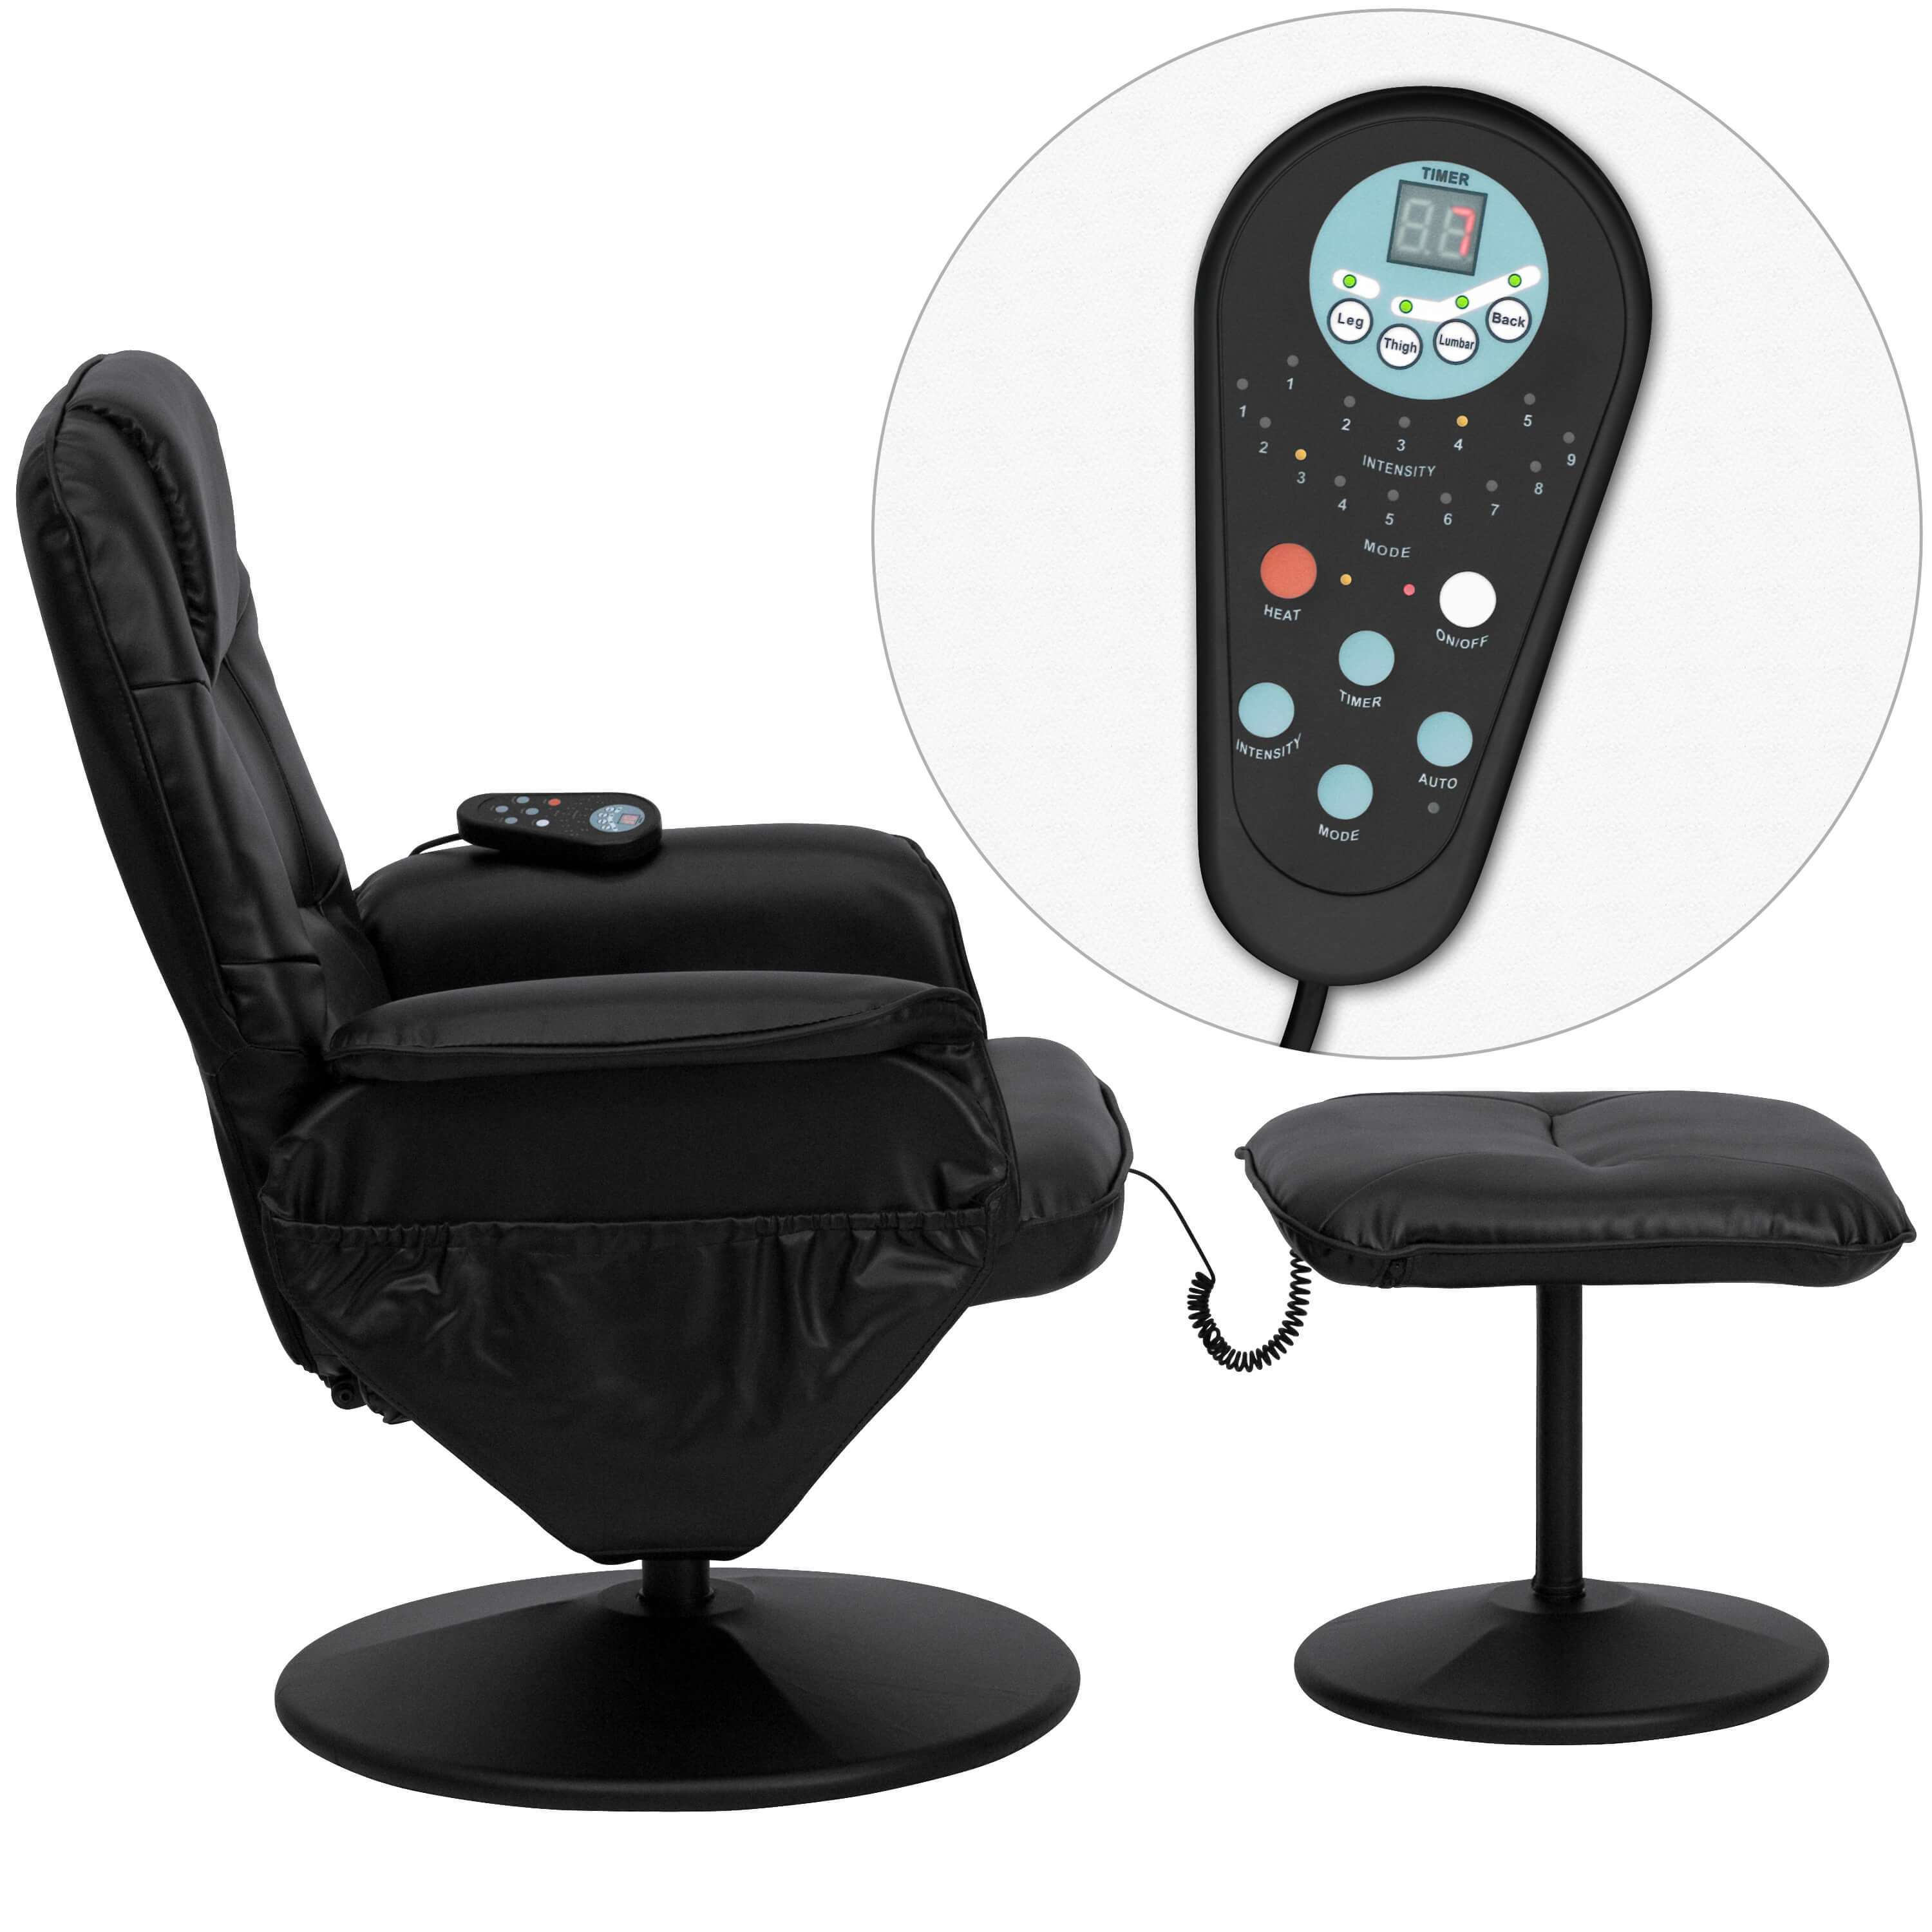 Recliner chair with massage remote view